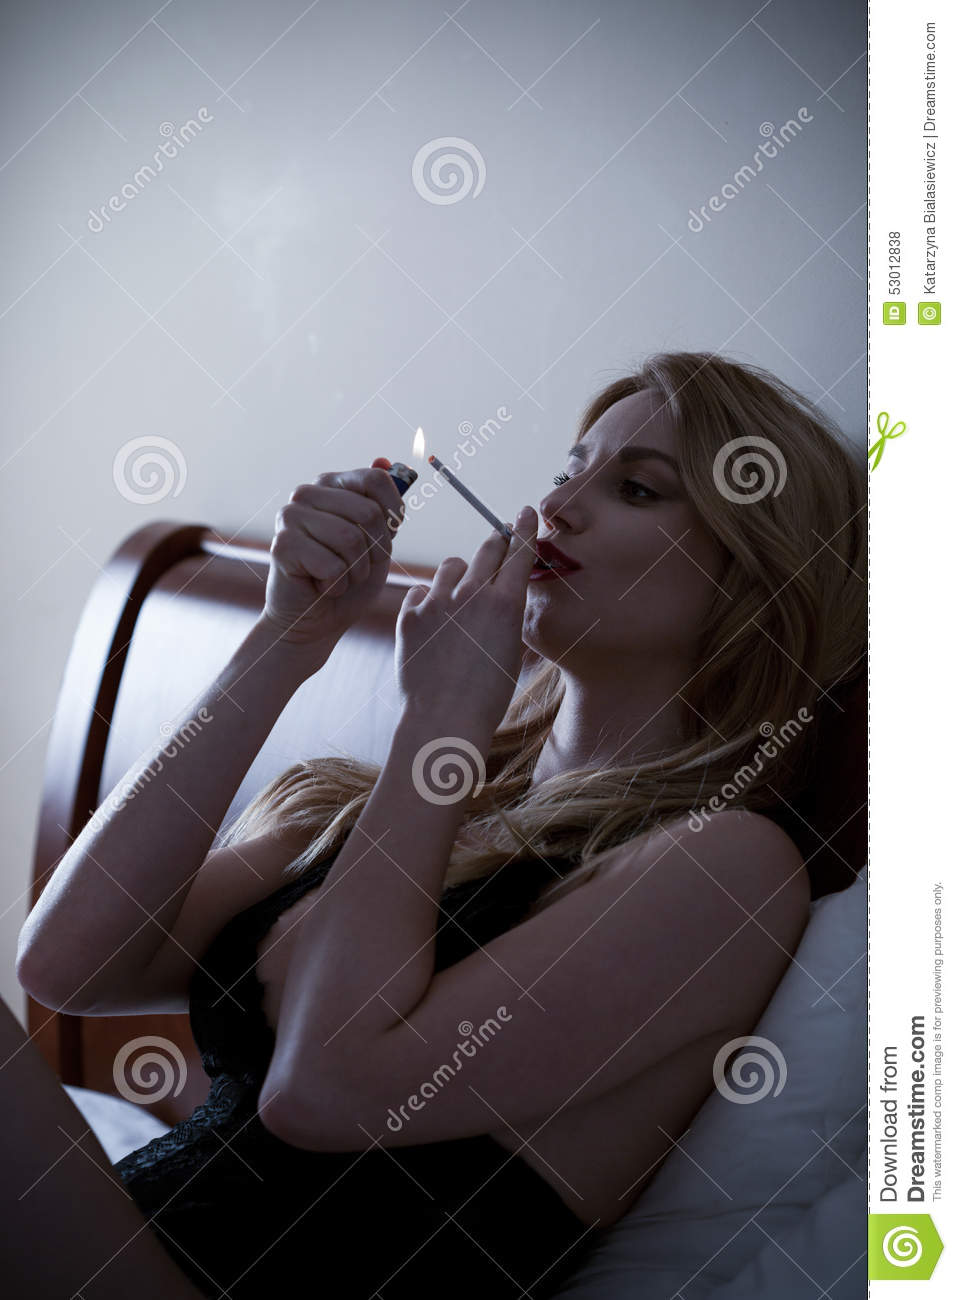 https://thumbs.dreamstime.com/z/smoking-cigarette-bed-young-sexy-woman-53012838.jpg